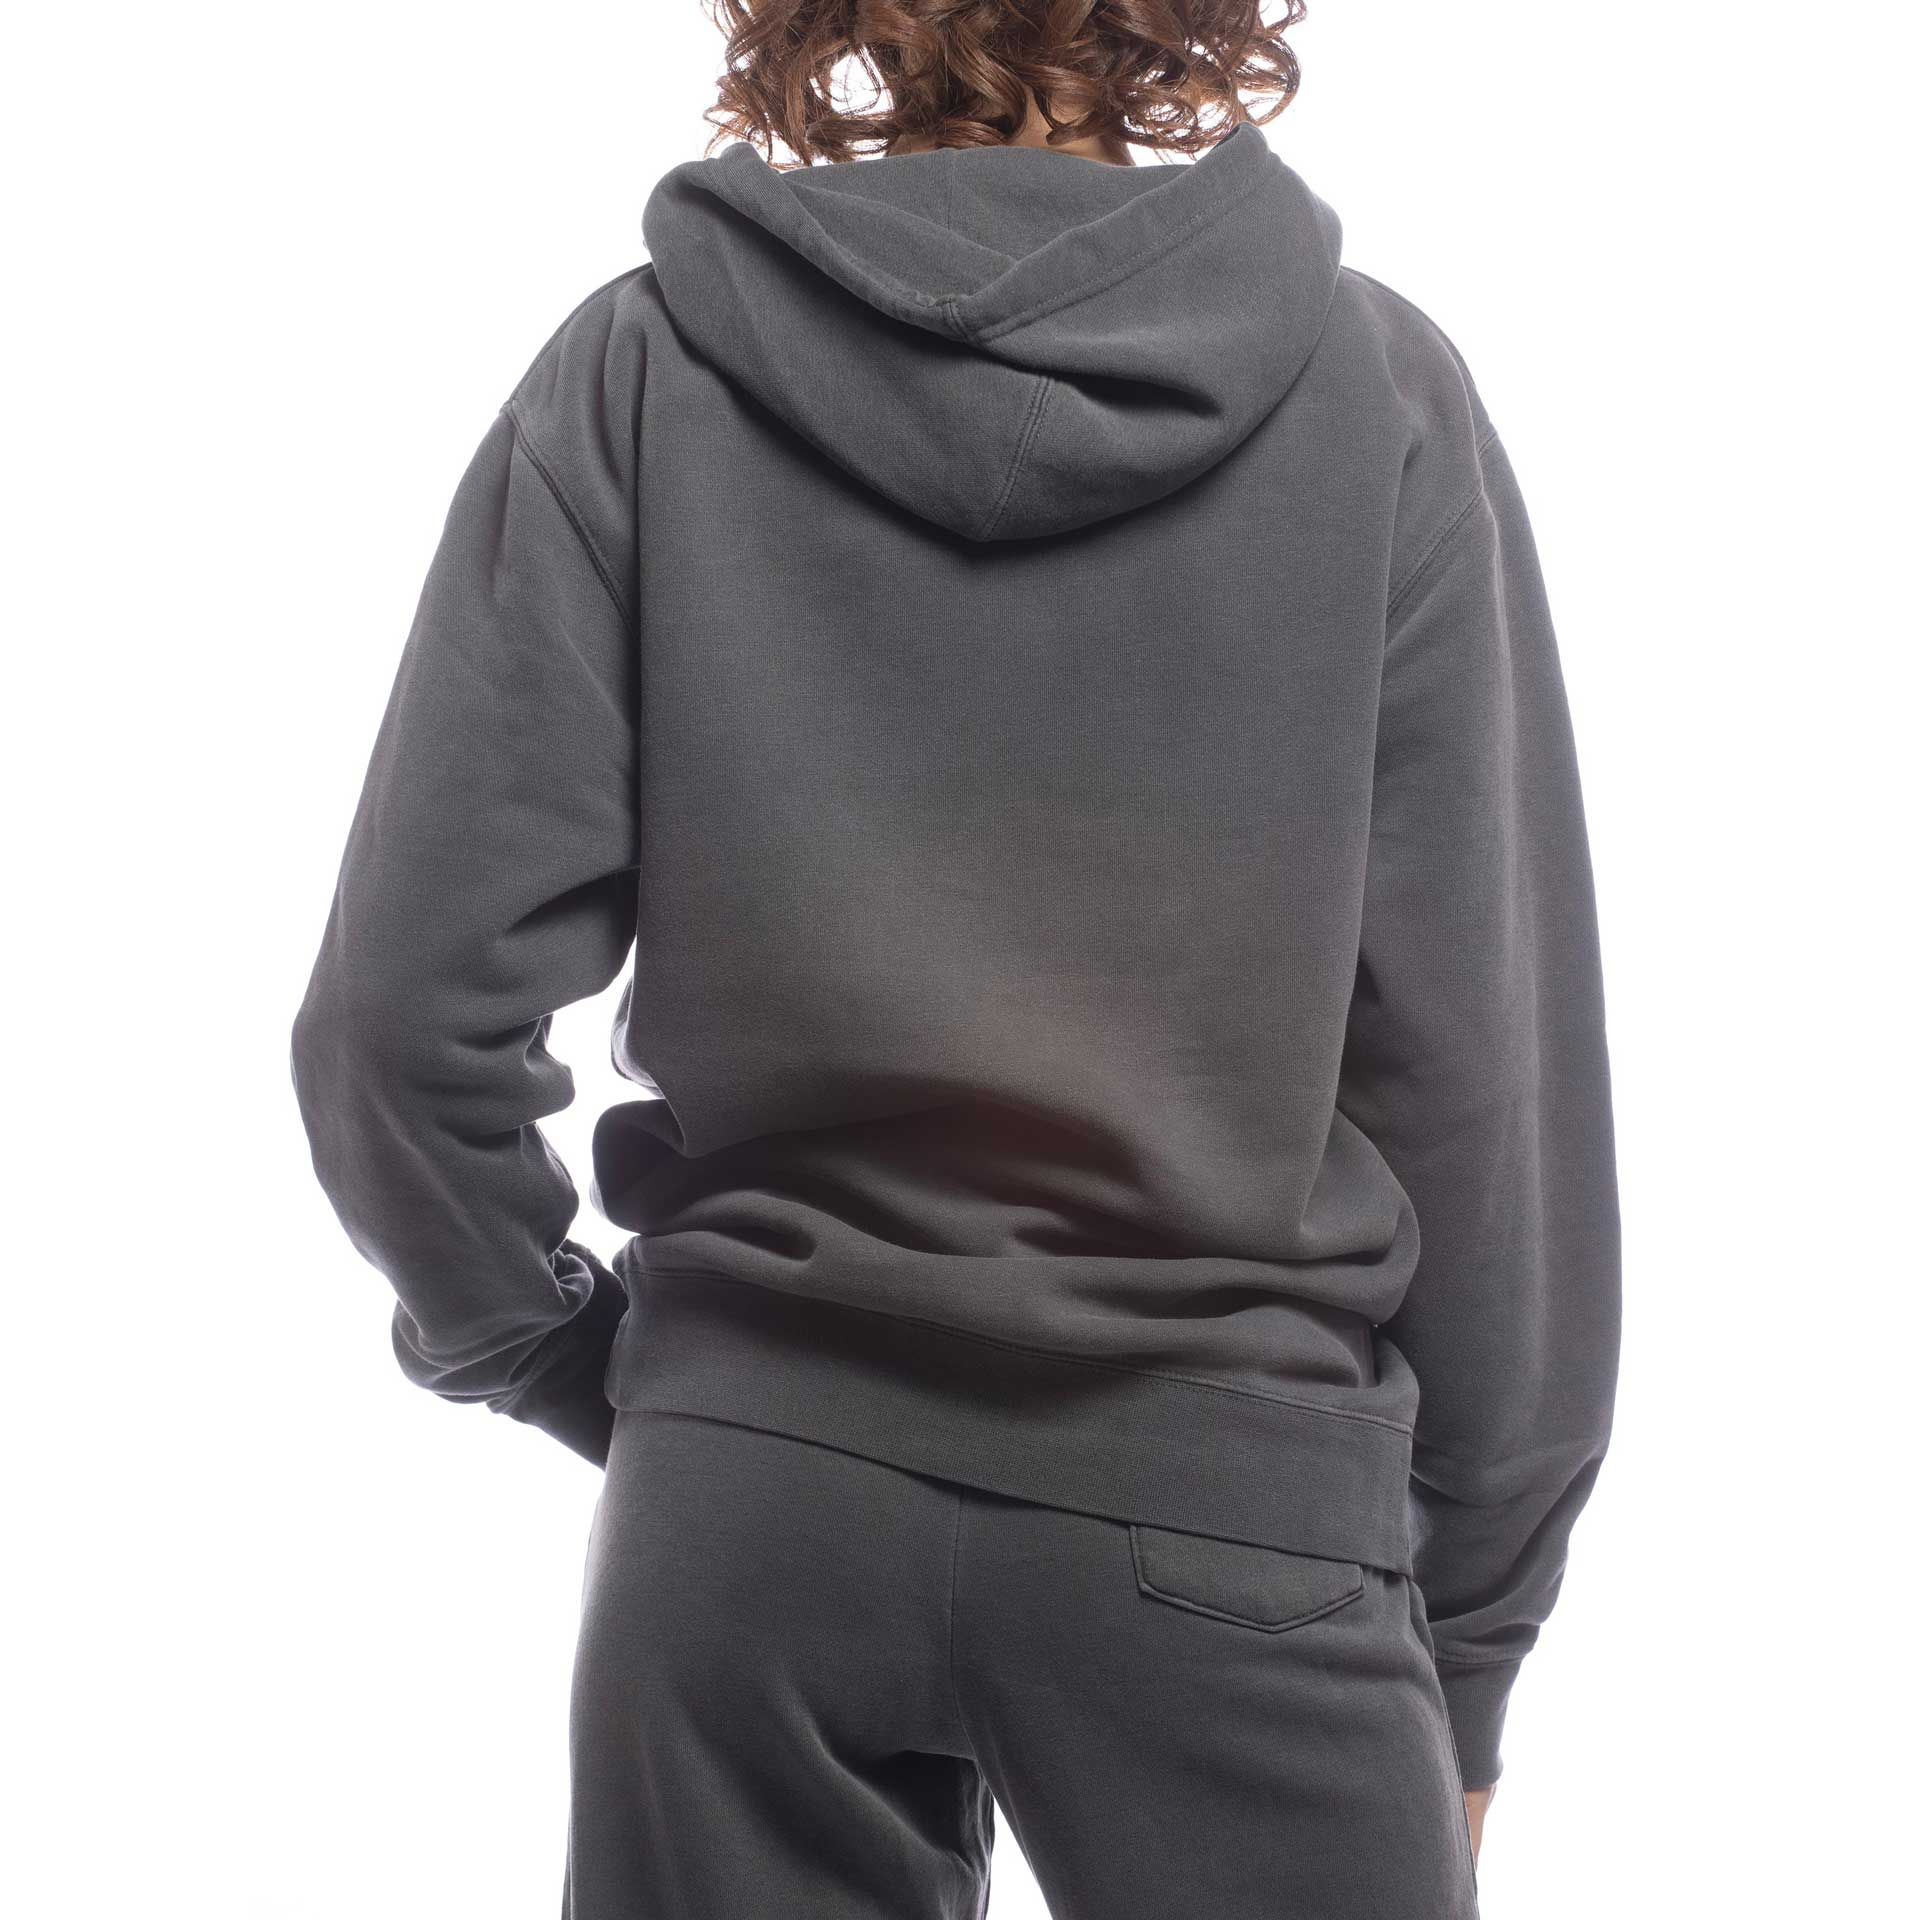 Unisex Upcycled Hoodie - Made For The People - Black